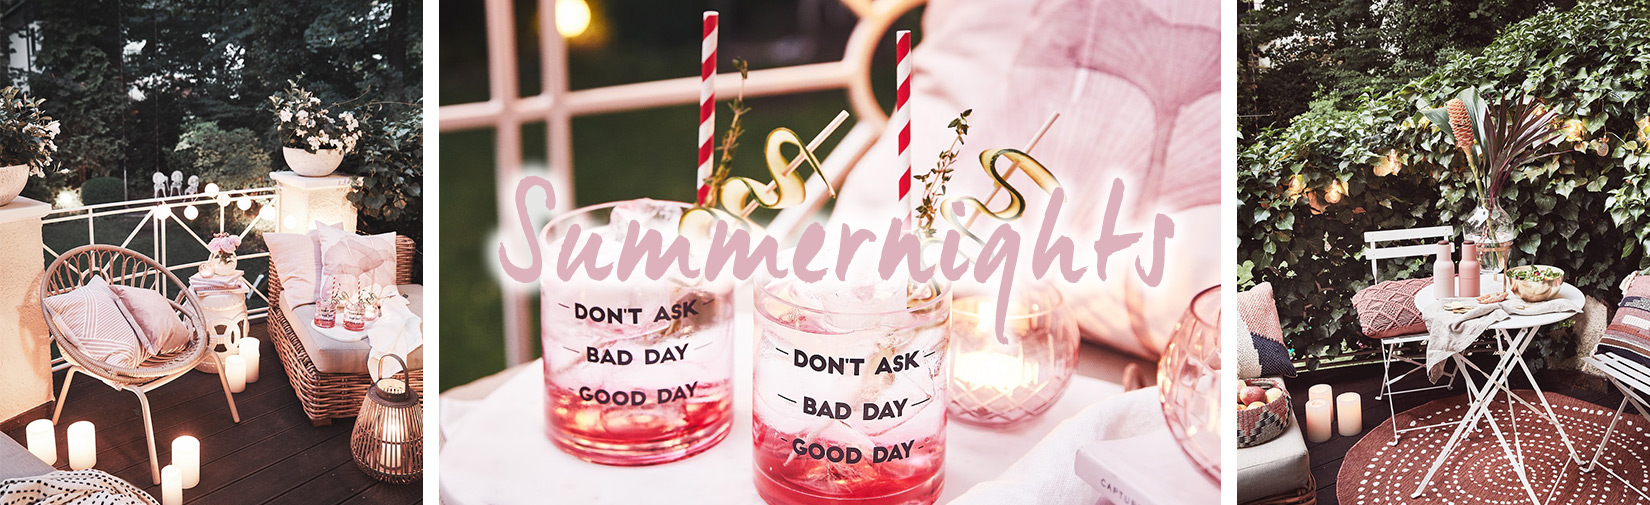 Trend_Summernights_LP-desktop